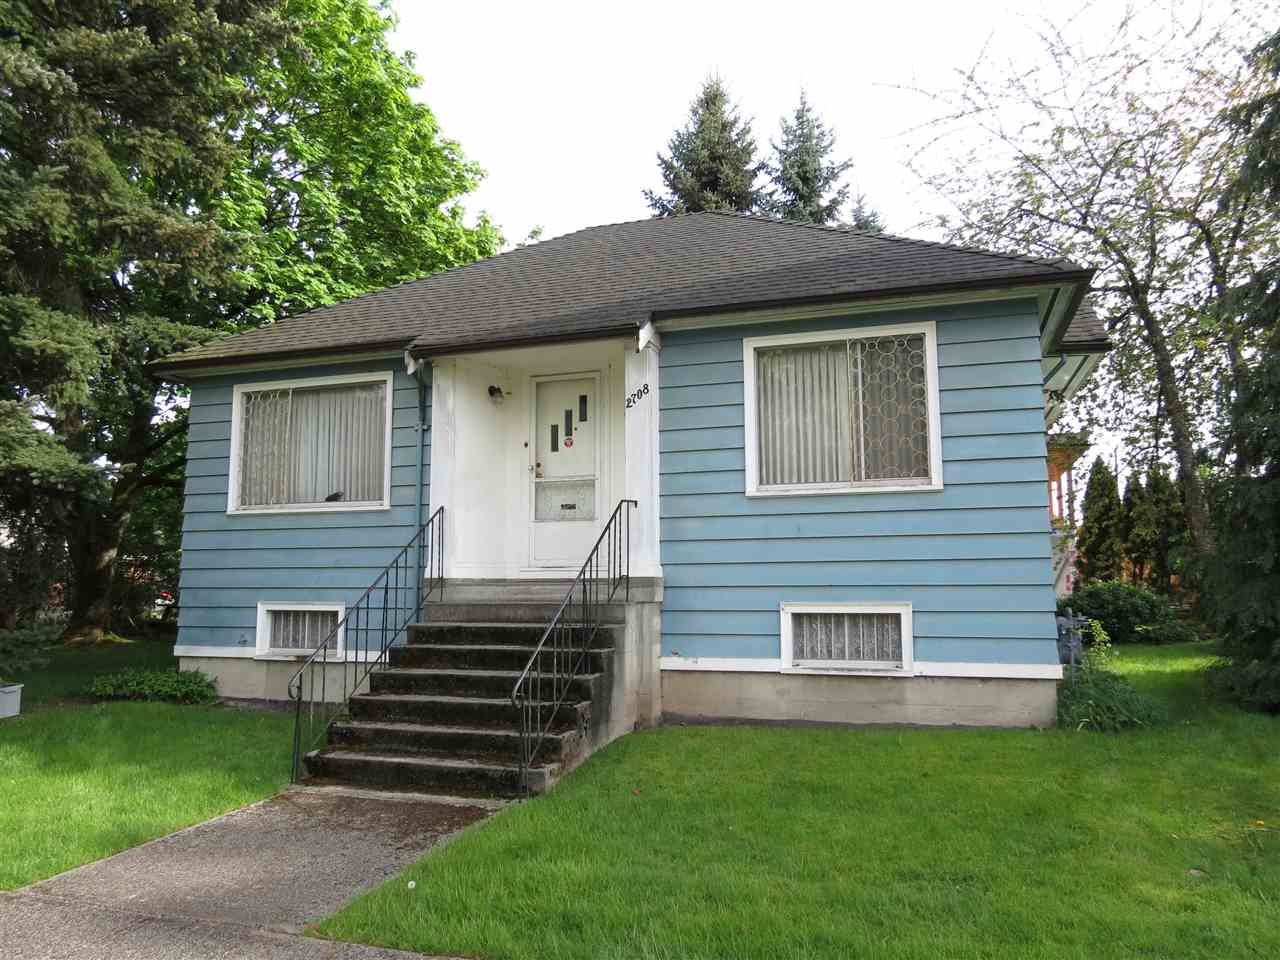 Main Photo: 2708 E 21ST Avenue in Vancouver: Renfrew Heights House for sale (Vancouver East)  : MLS®# R2064151